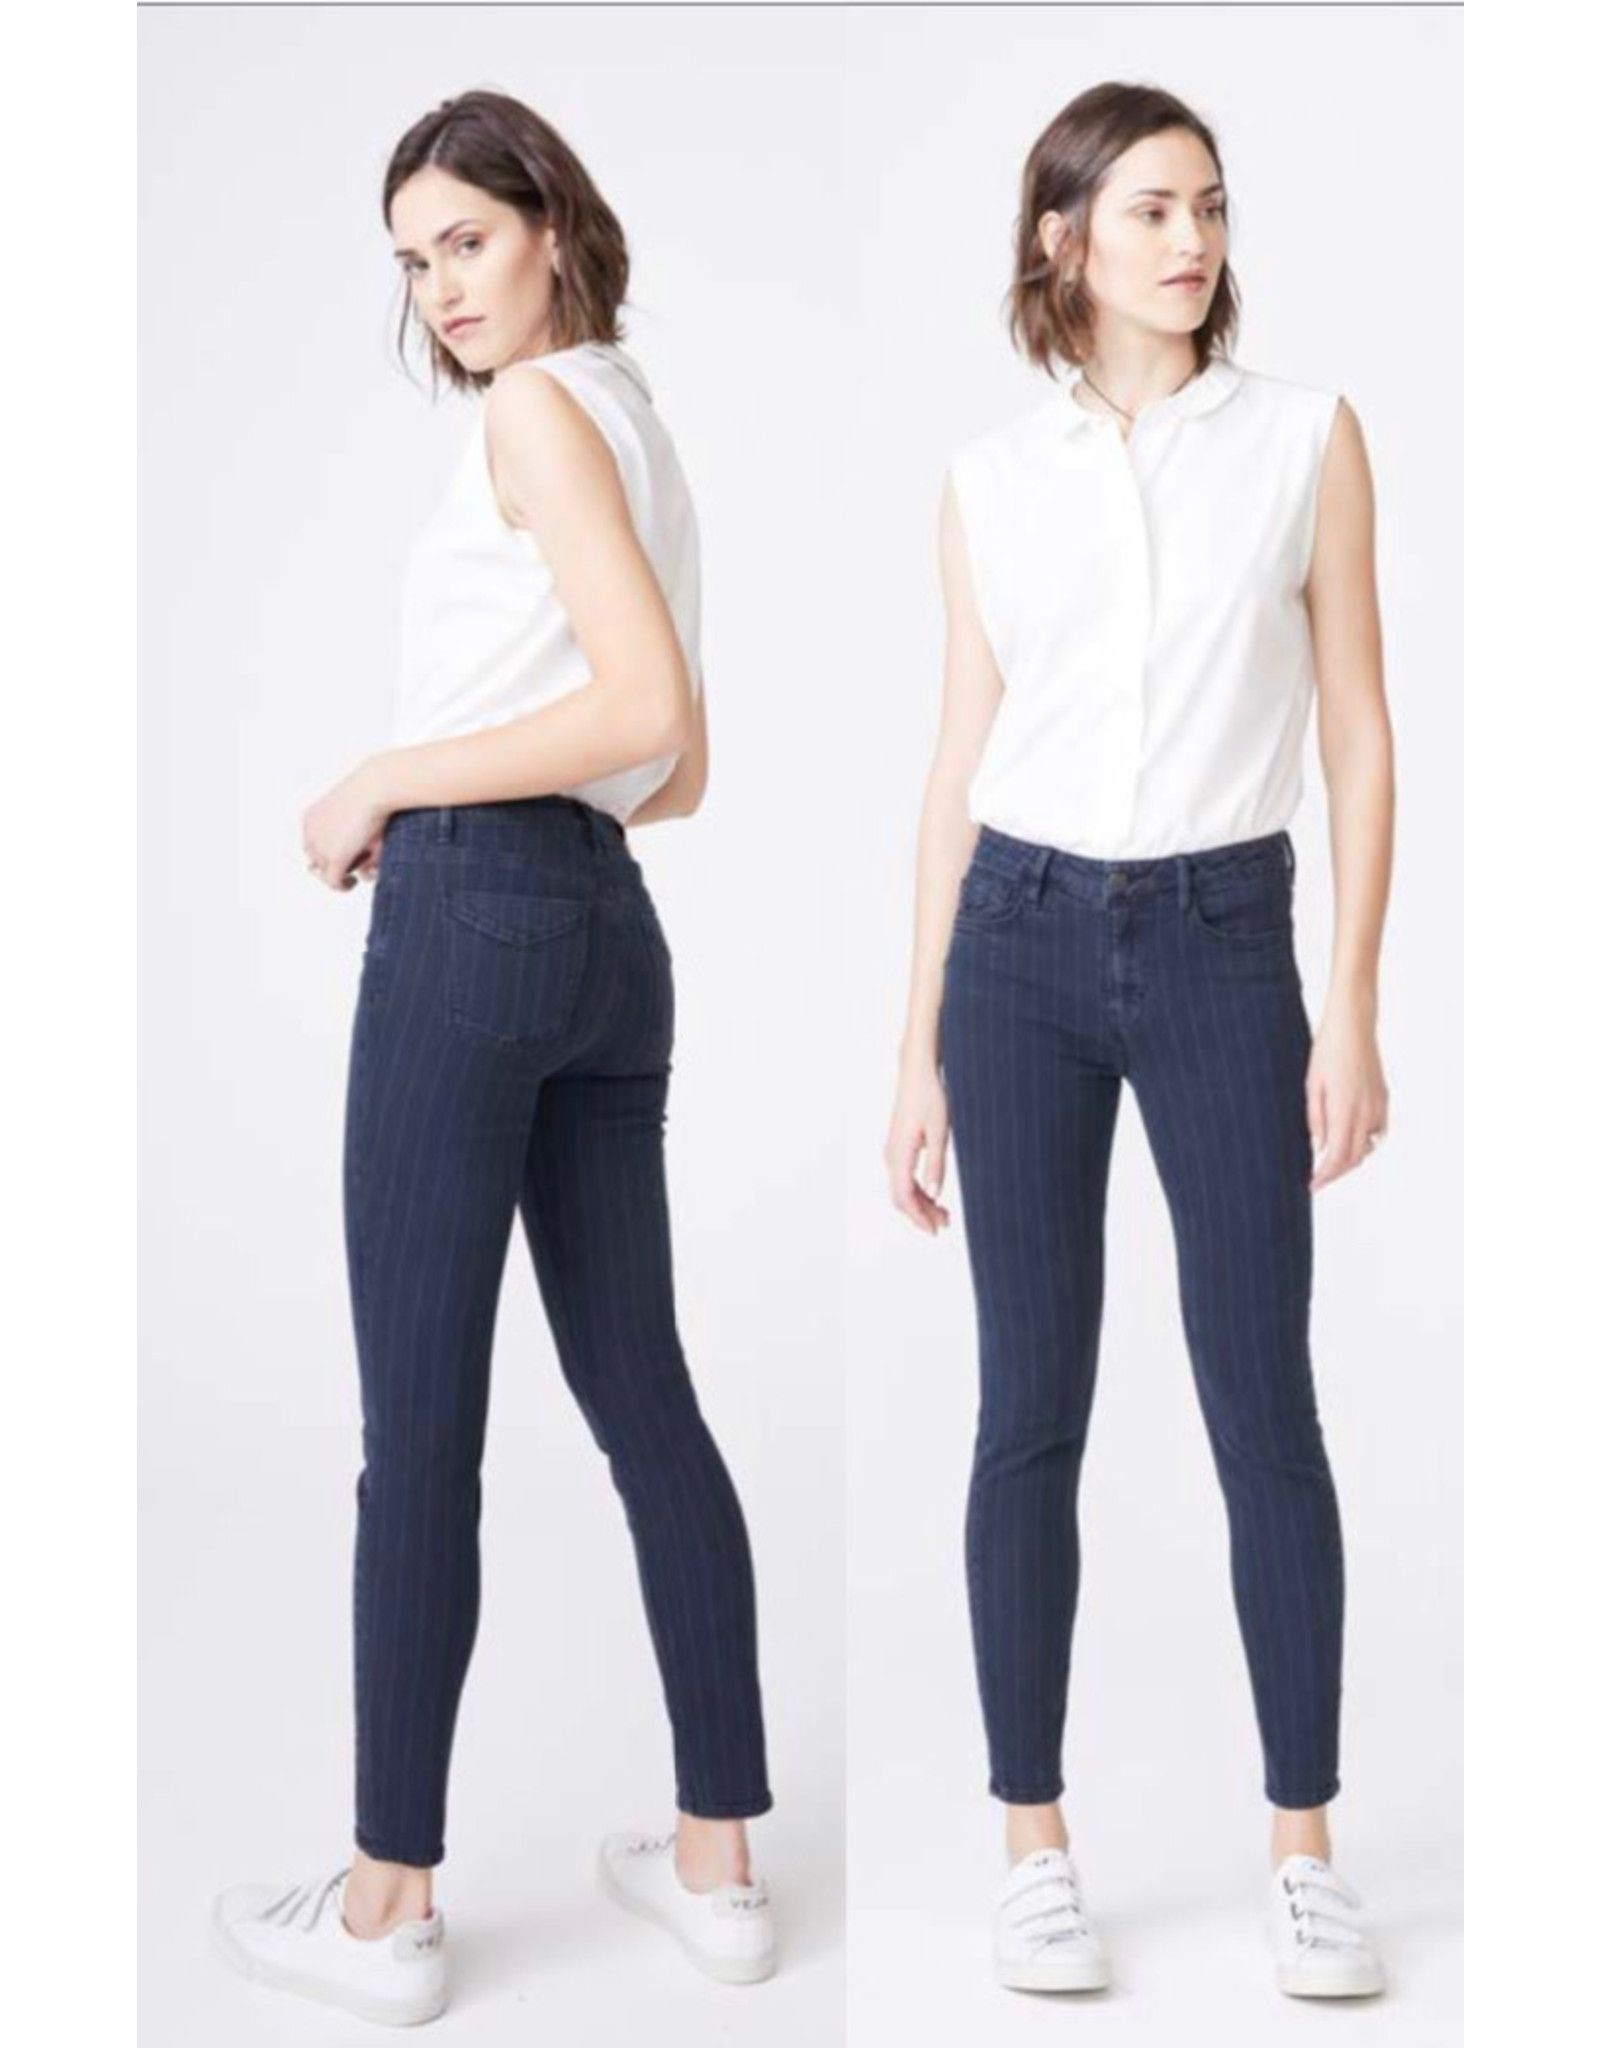 Unpublished Unpublished - Olivia high rise skinny (shadow stripe)